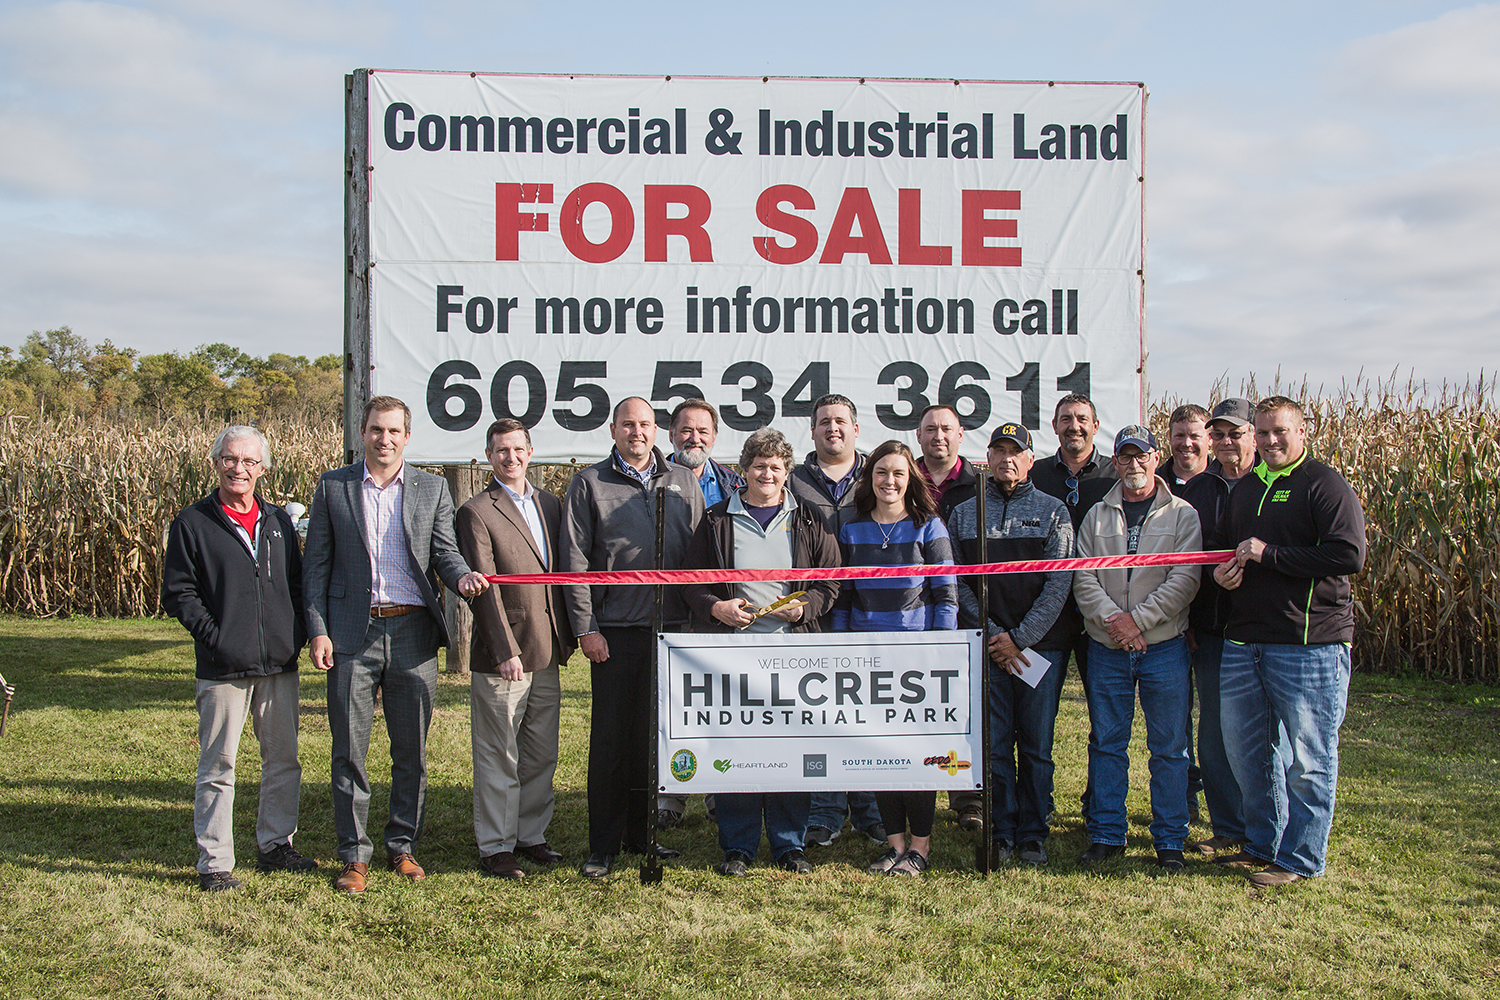 Hillcrest Industrial Park Ribbon Cutting